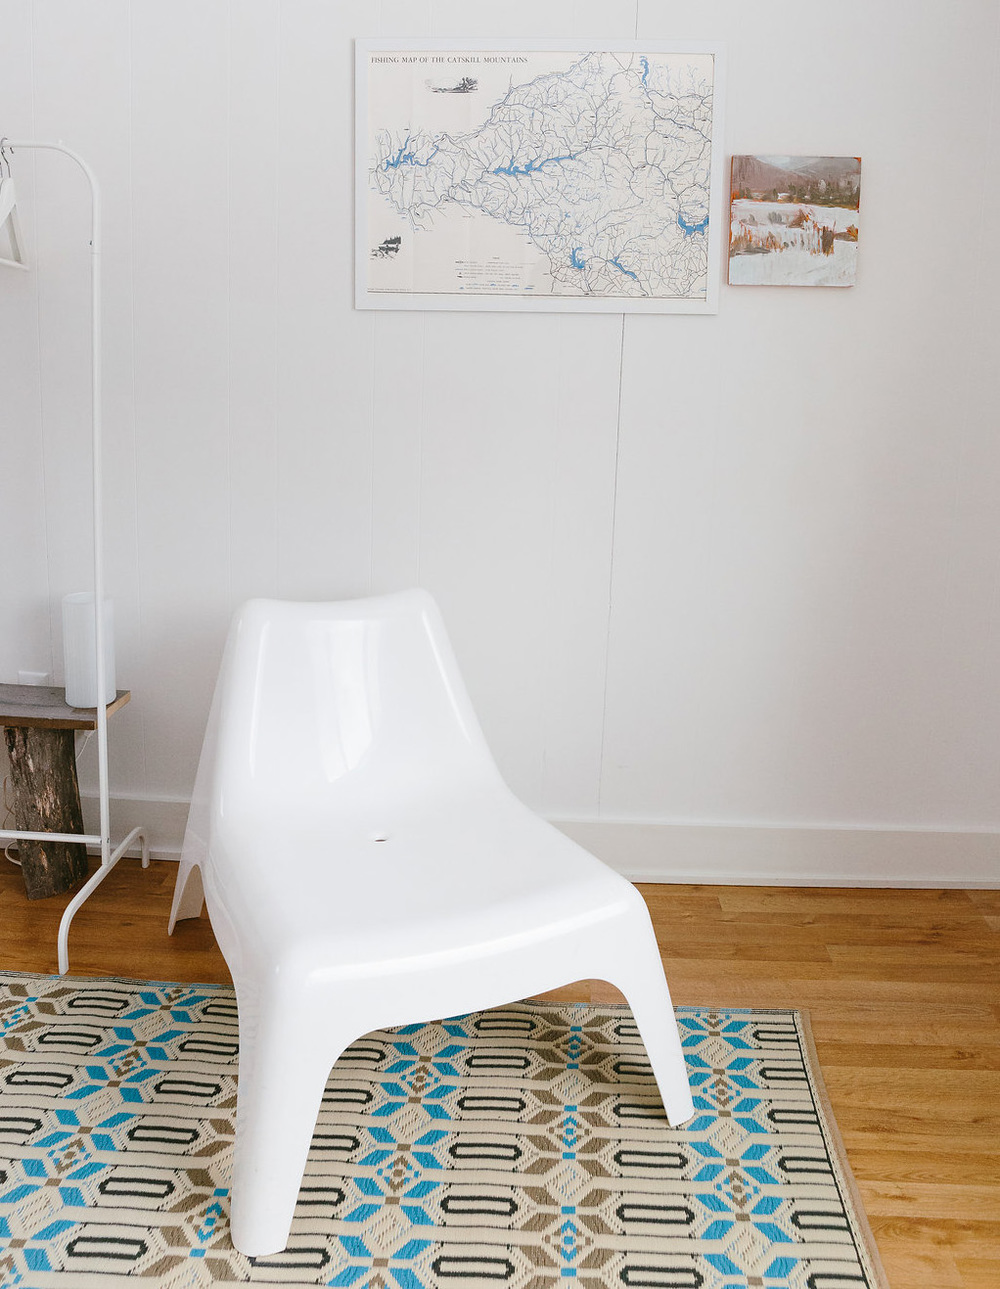 I Love Lamp Ikea Sinnerlig Light Casey Scieszka Wiring A Dining Room Or This Ps Vago Outdoor Chair That Lives In 7 Of Our Inn